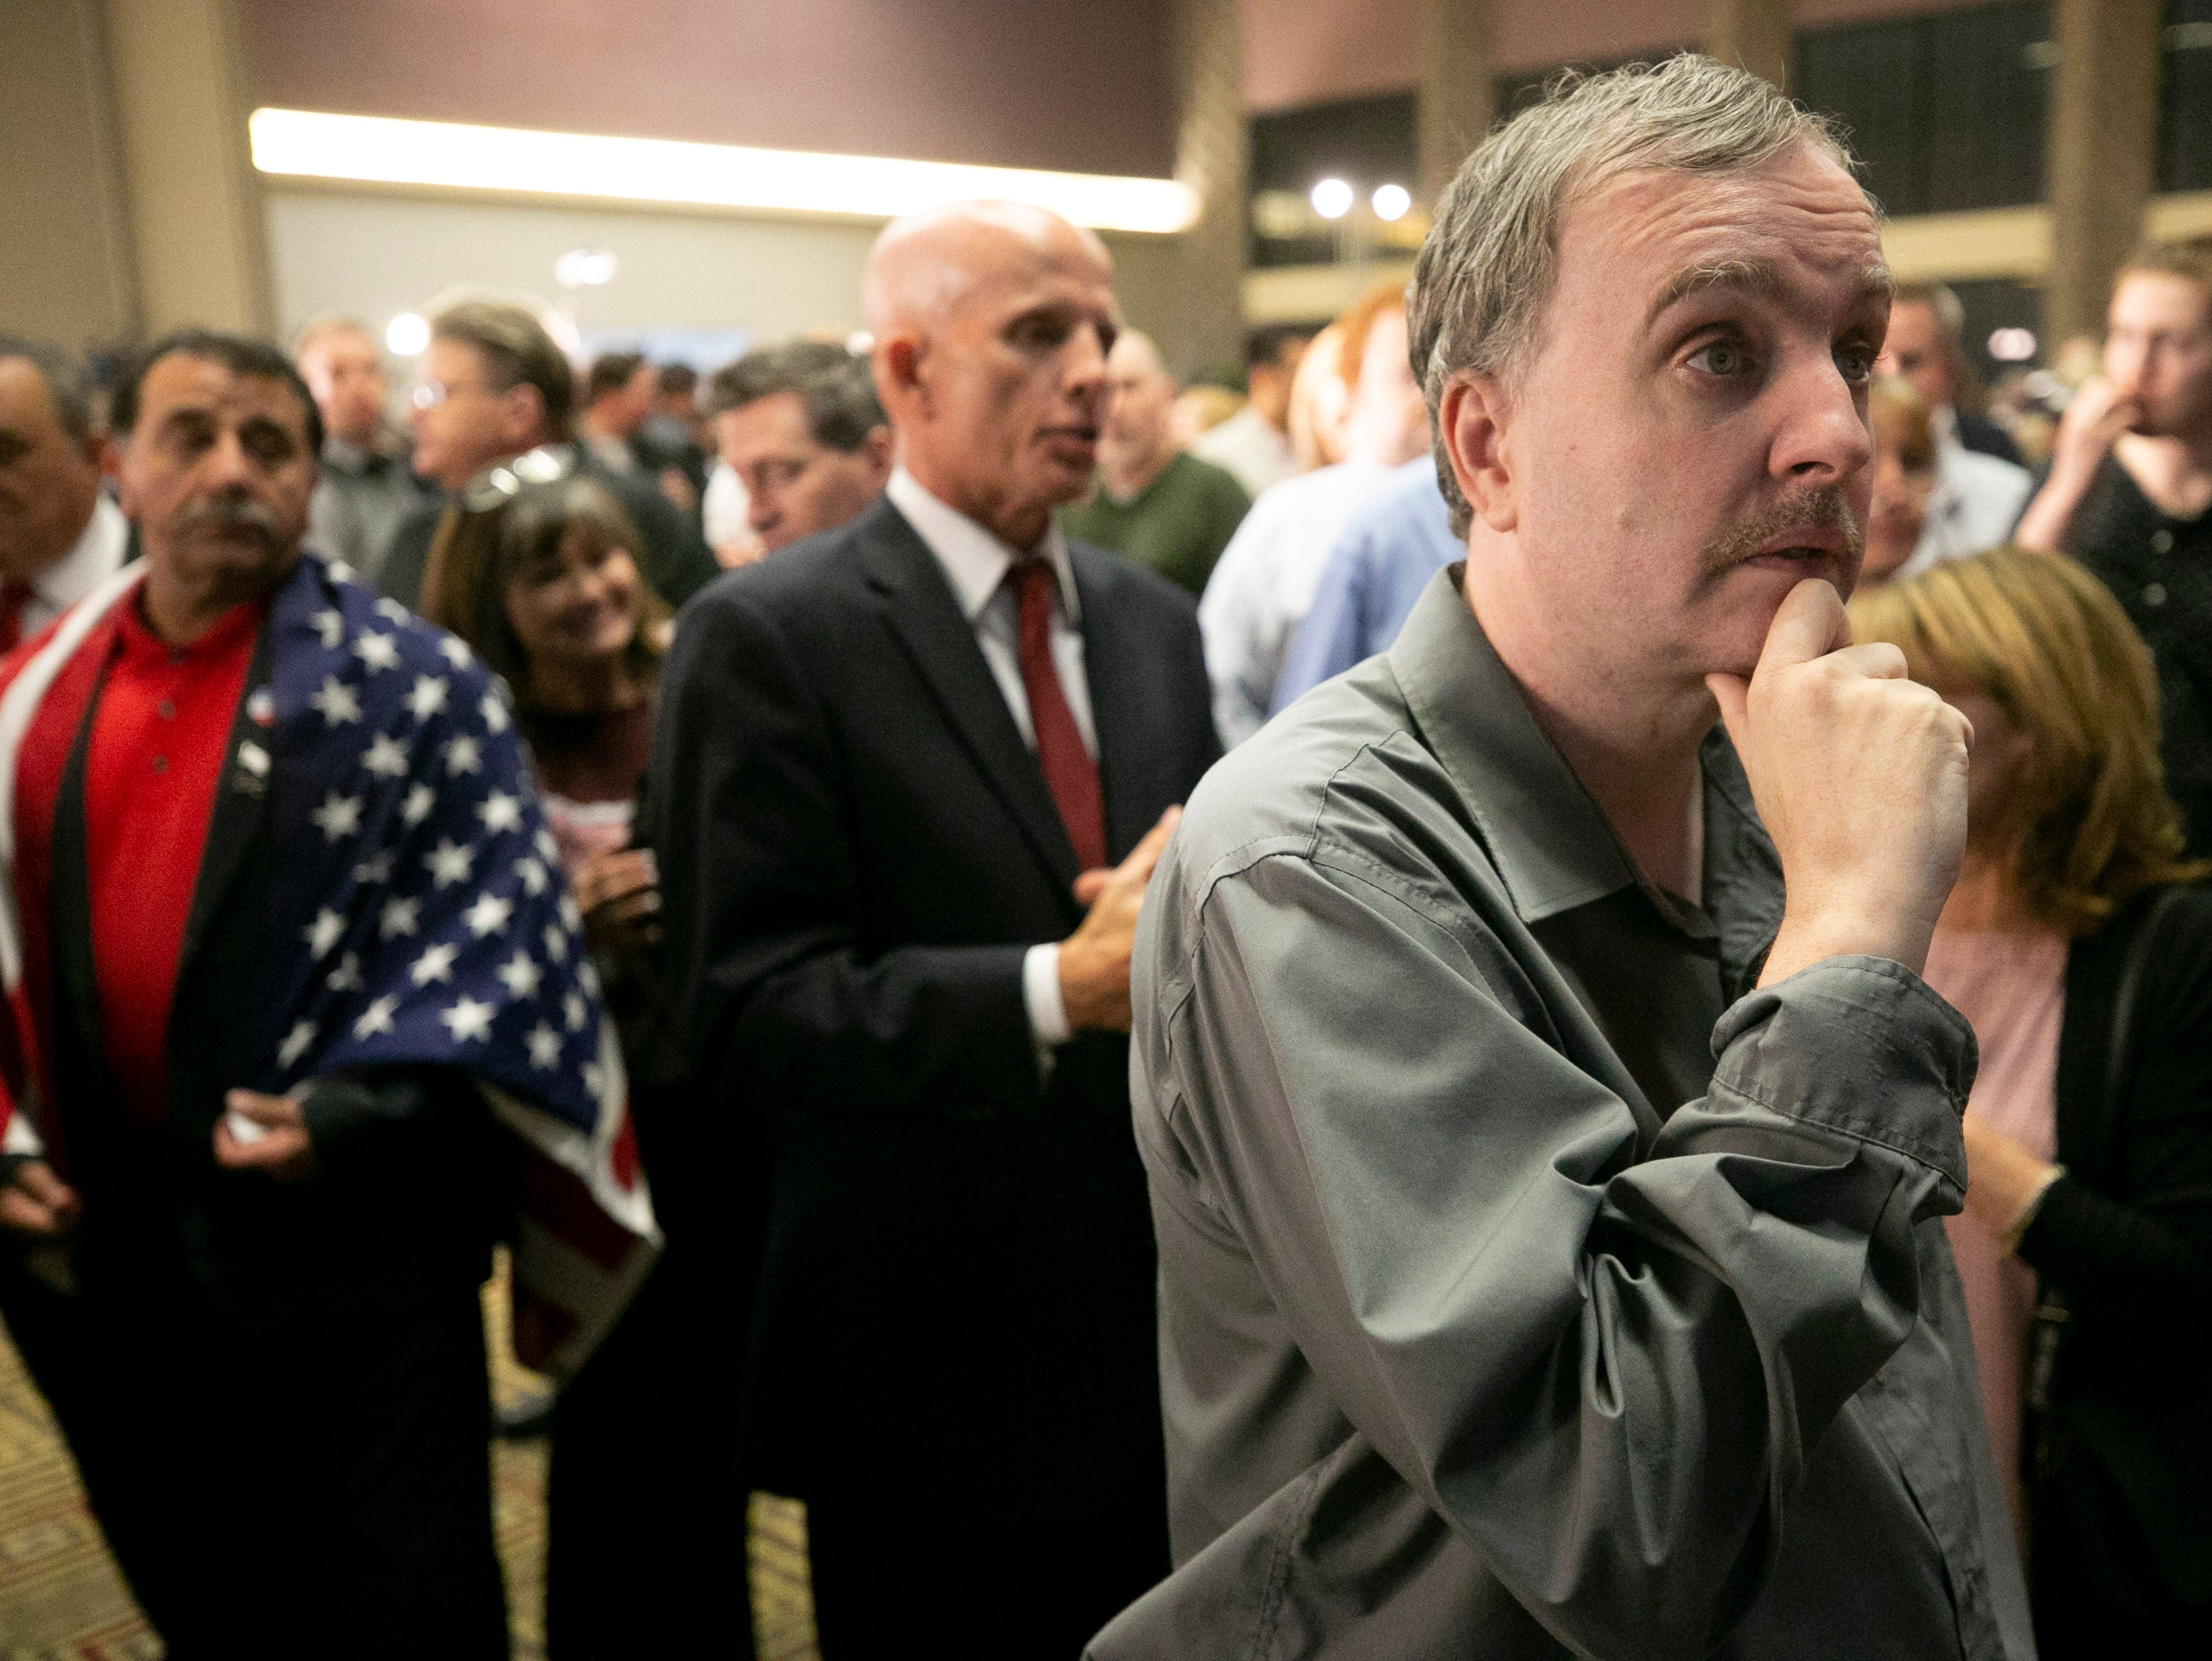 Republican Stephen Fischer of Surprise watches early results during the Republican watch party at the DoubleTree Resort in Scottsdale on Election Day for the midterms on Tuesday, November 6, 2018.